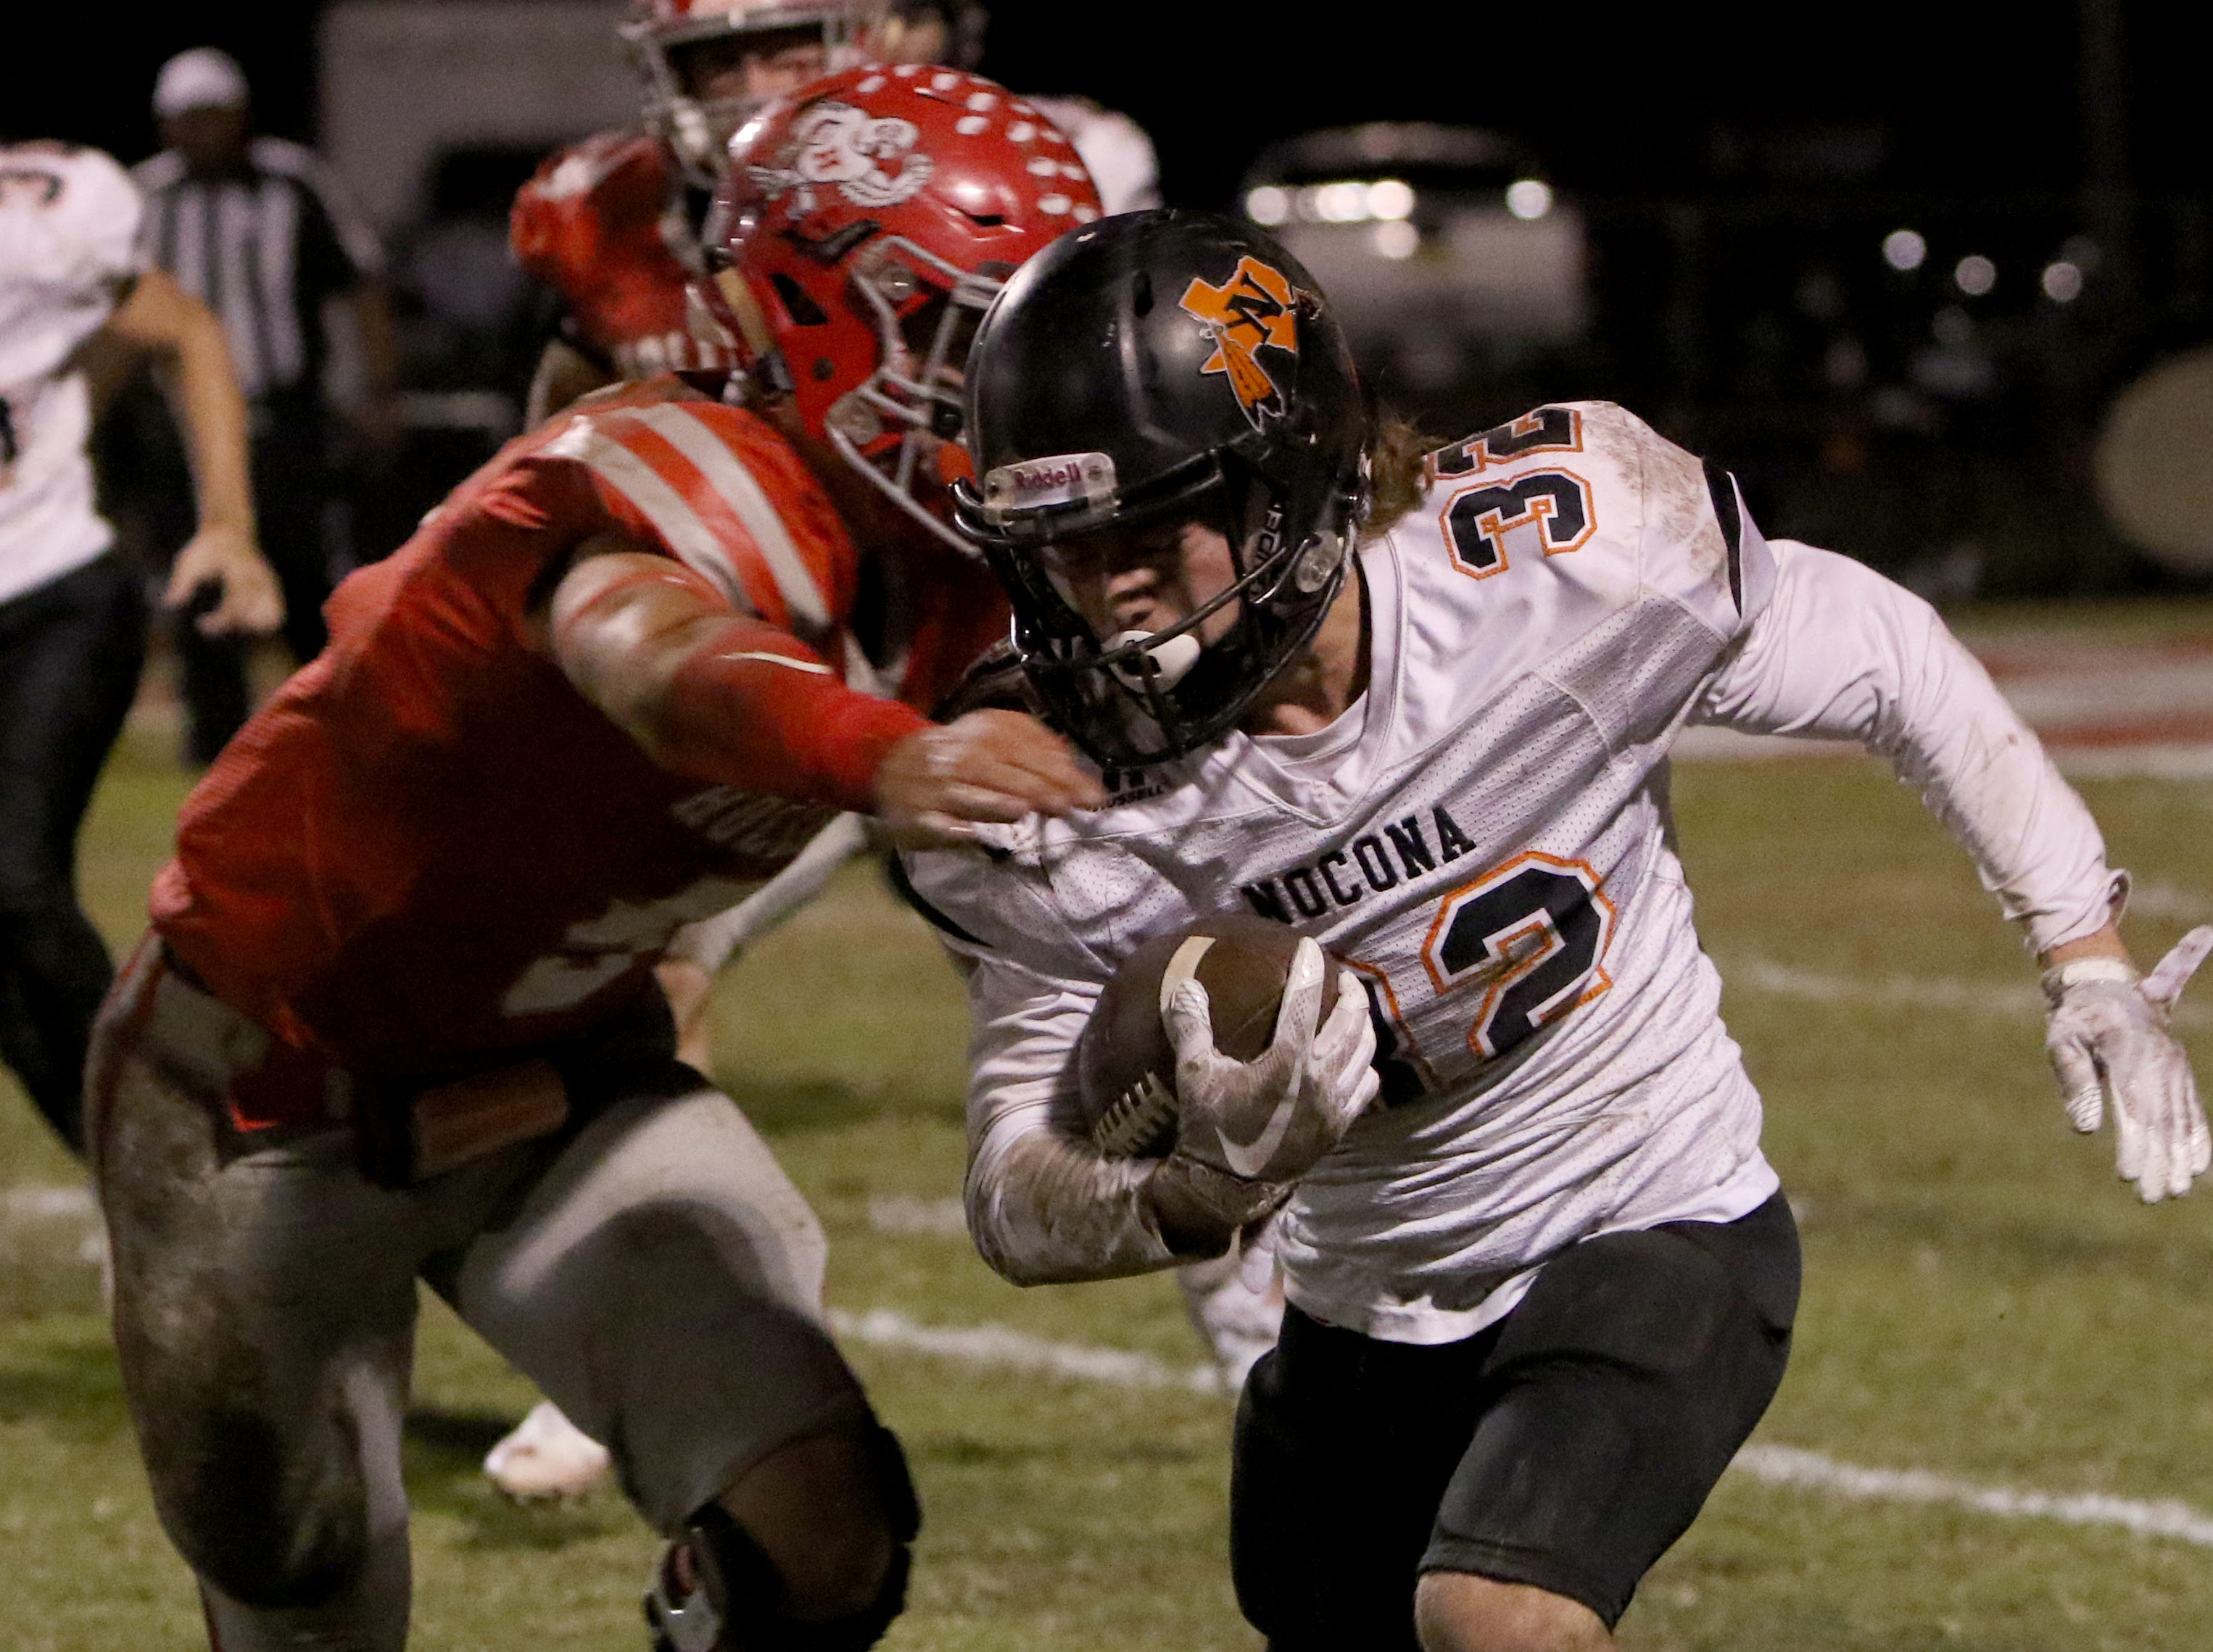 Nocona's Hunter Fenoglio is tackled by Holliday's Jett Johnson Friday, Nov. 2, 2018, at Eagle Stadium in Holliday. The Eagles defeated the Indians 38-0.